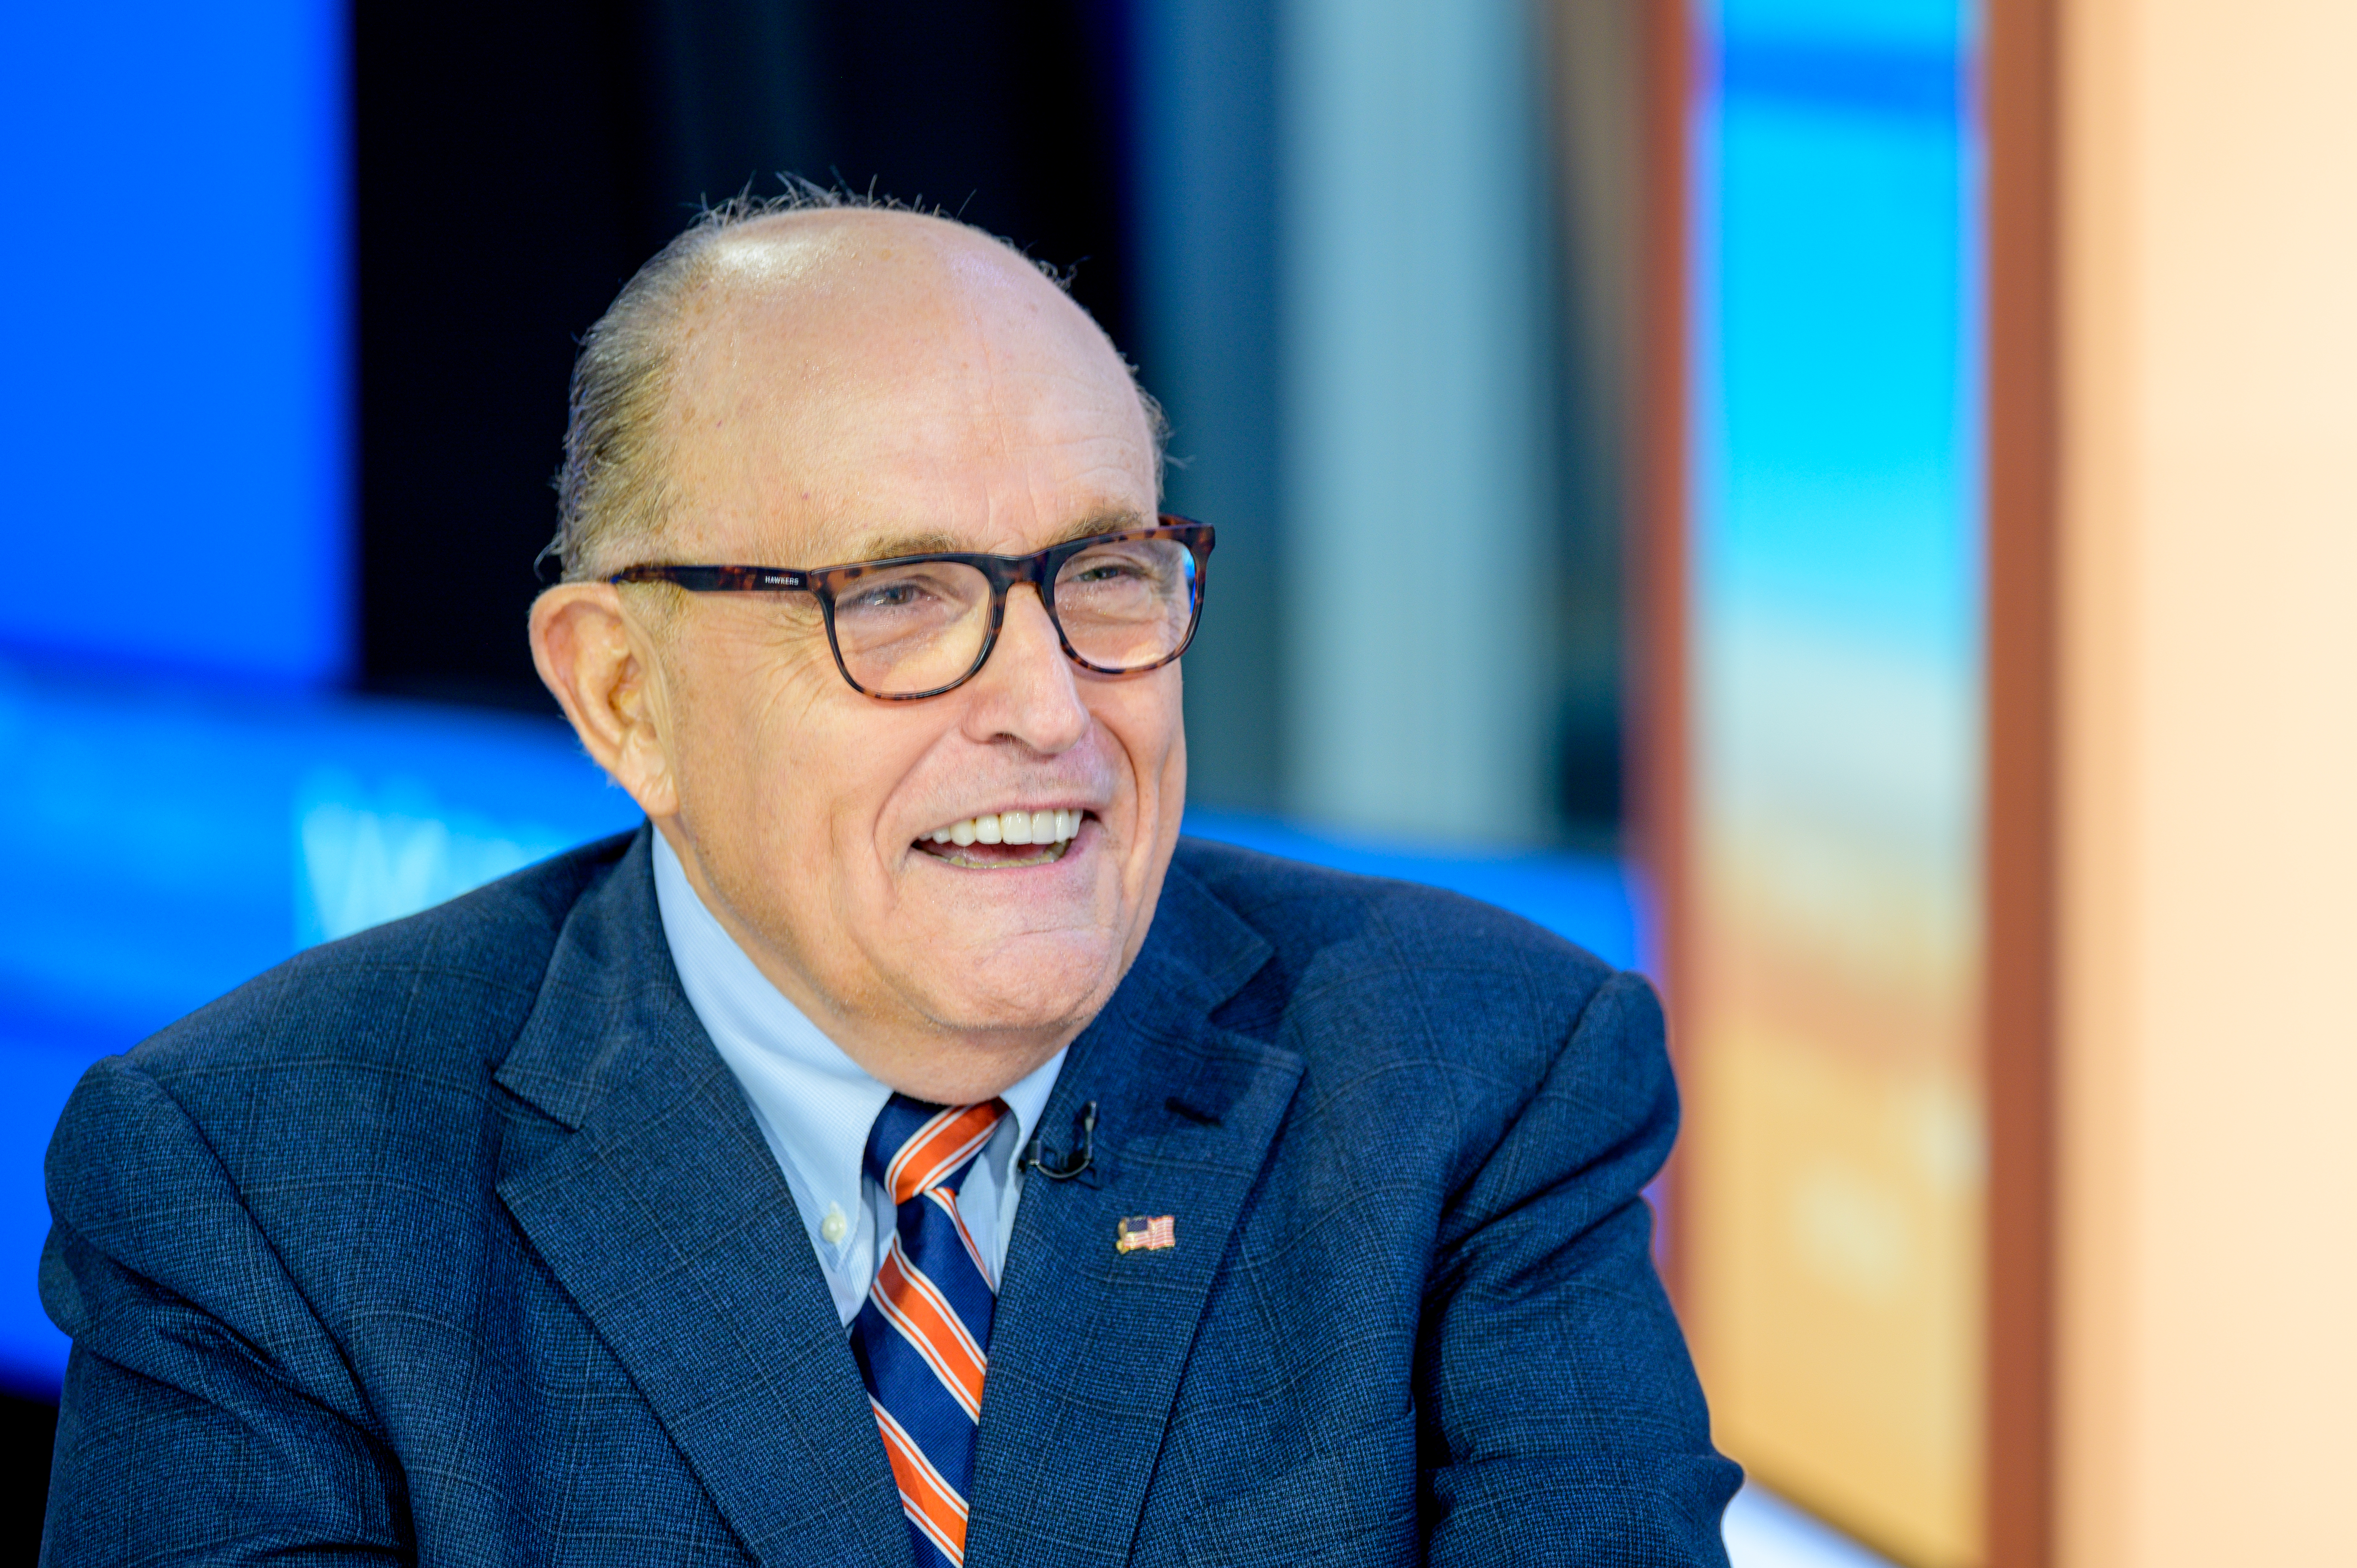 The strange career of Rudy Giuliani, from US attorney to Trump bagman, explained